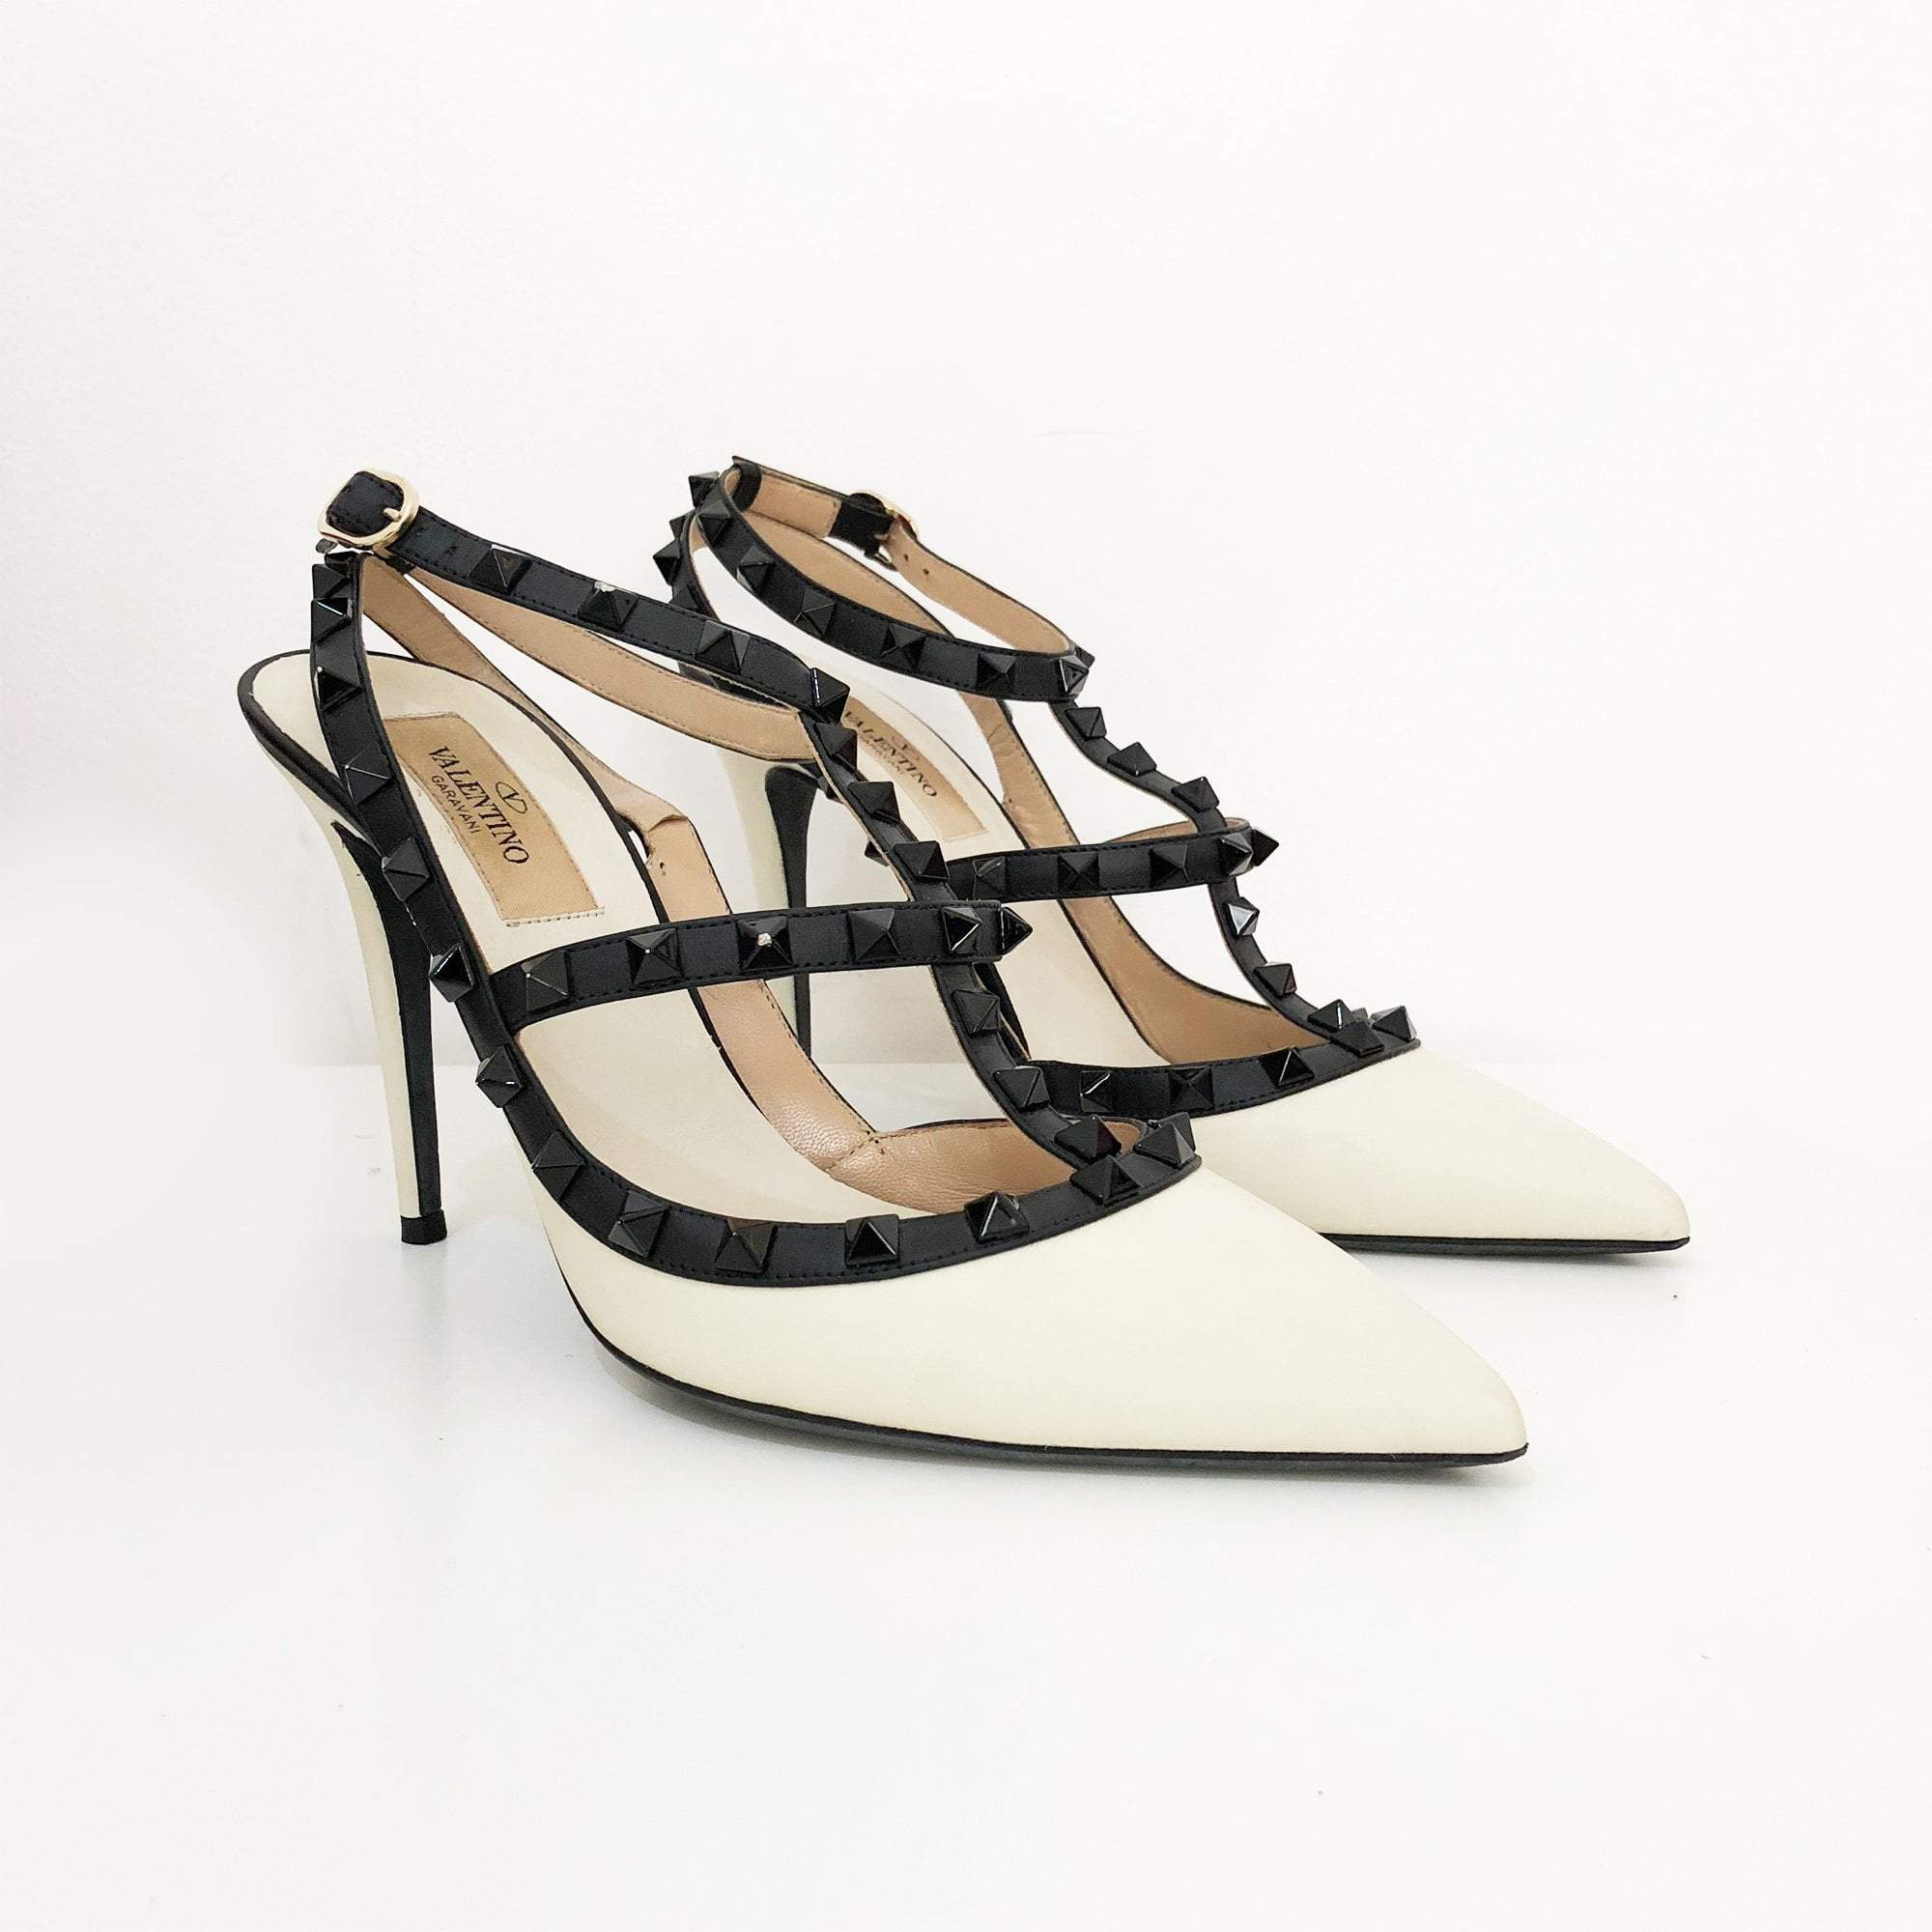 Valentino Garavani Rockstud White Leather Pumps